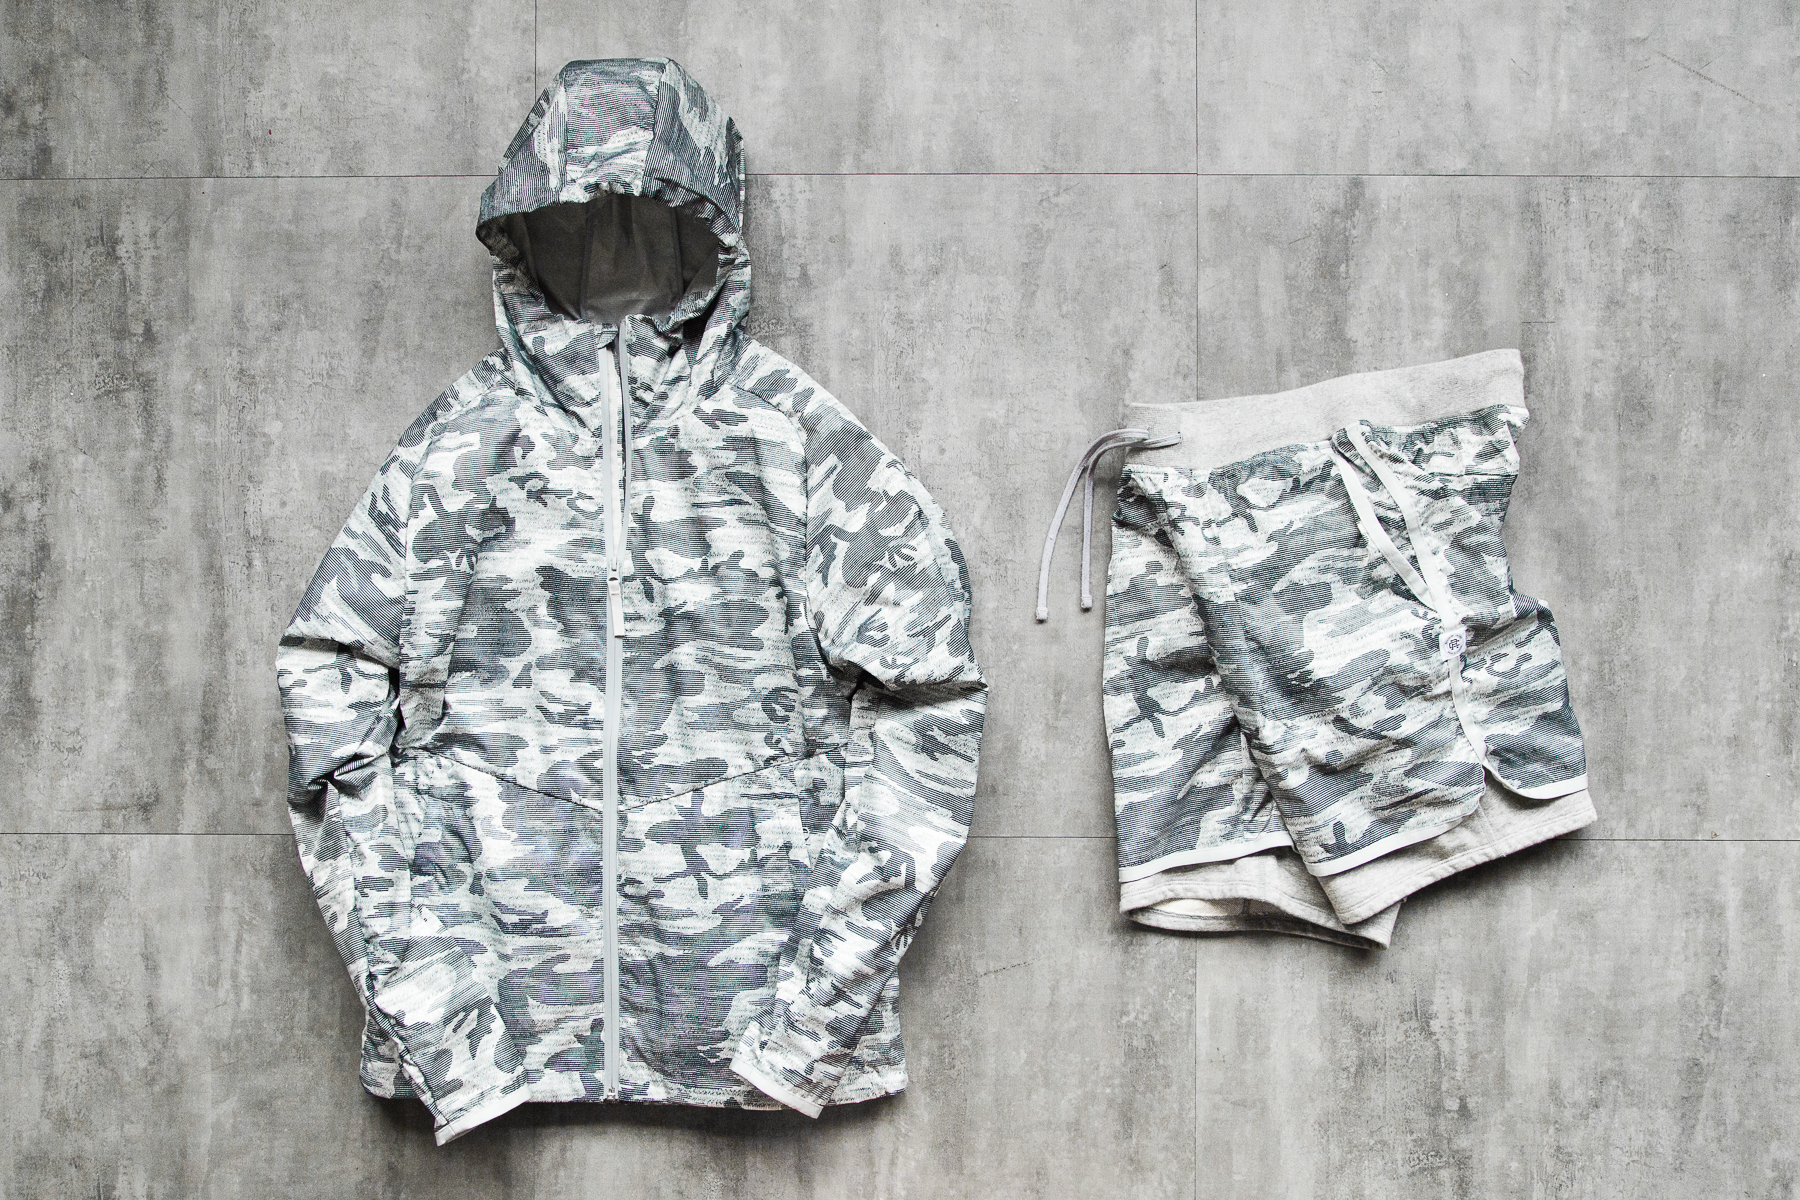 reigning champ 2014 spring summer sportswear collection